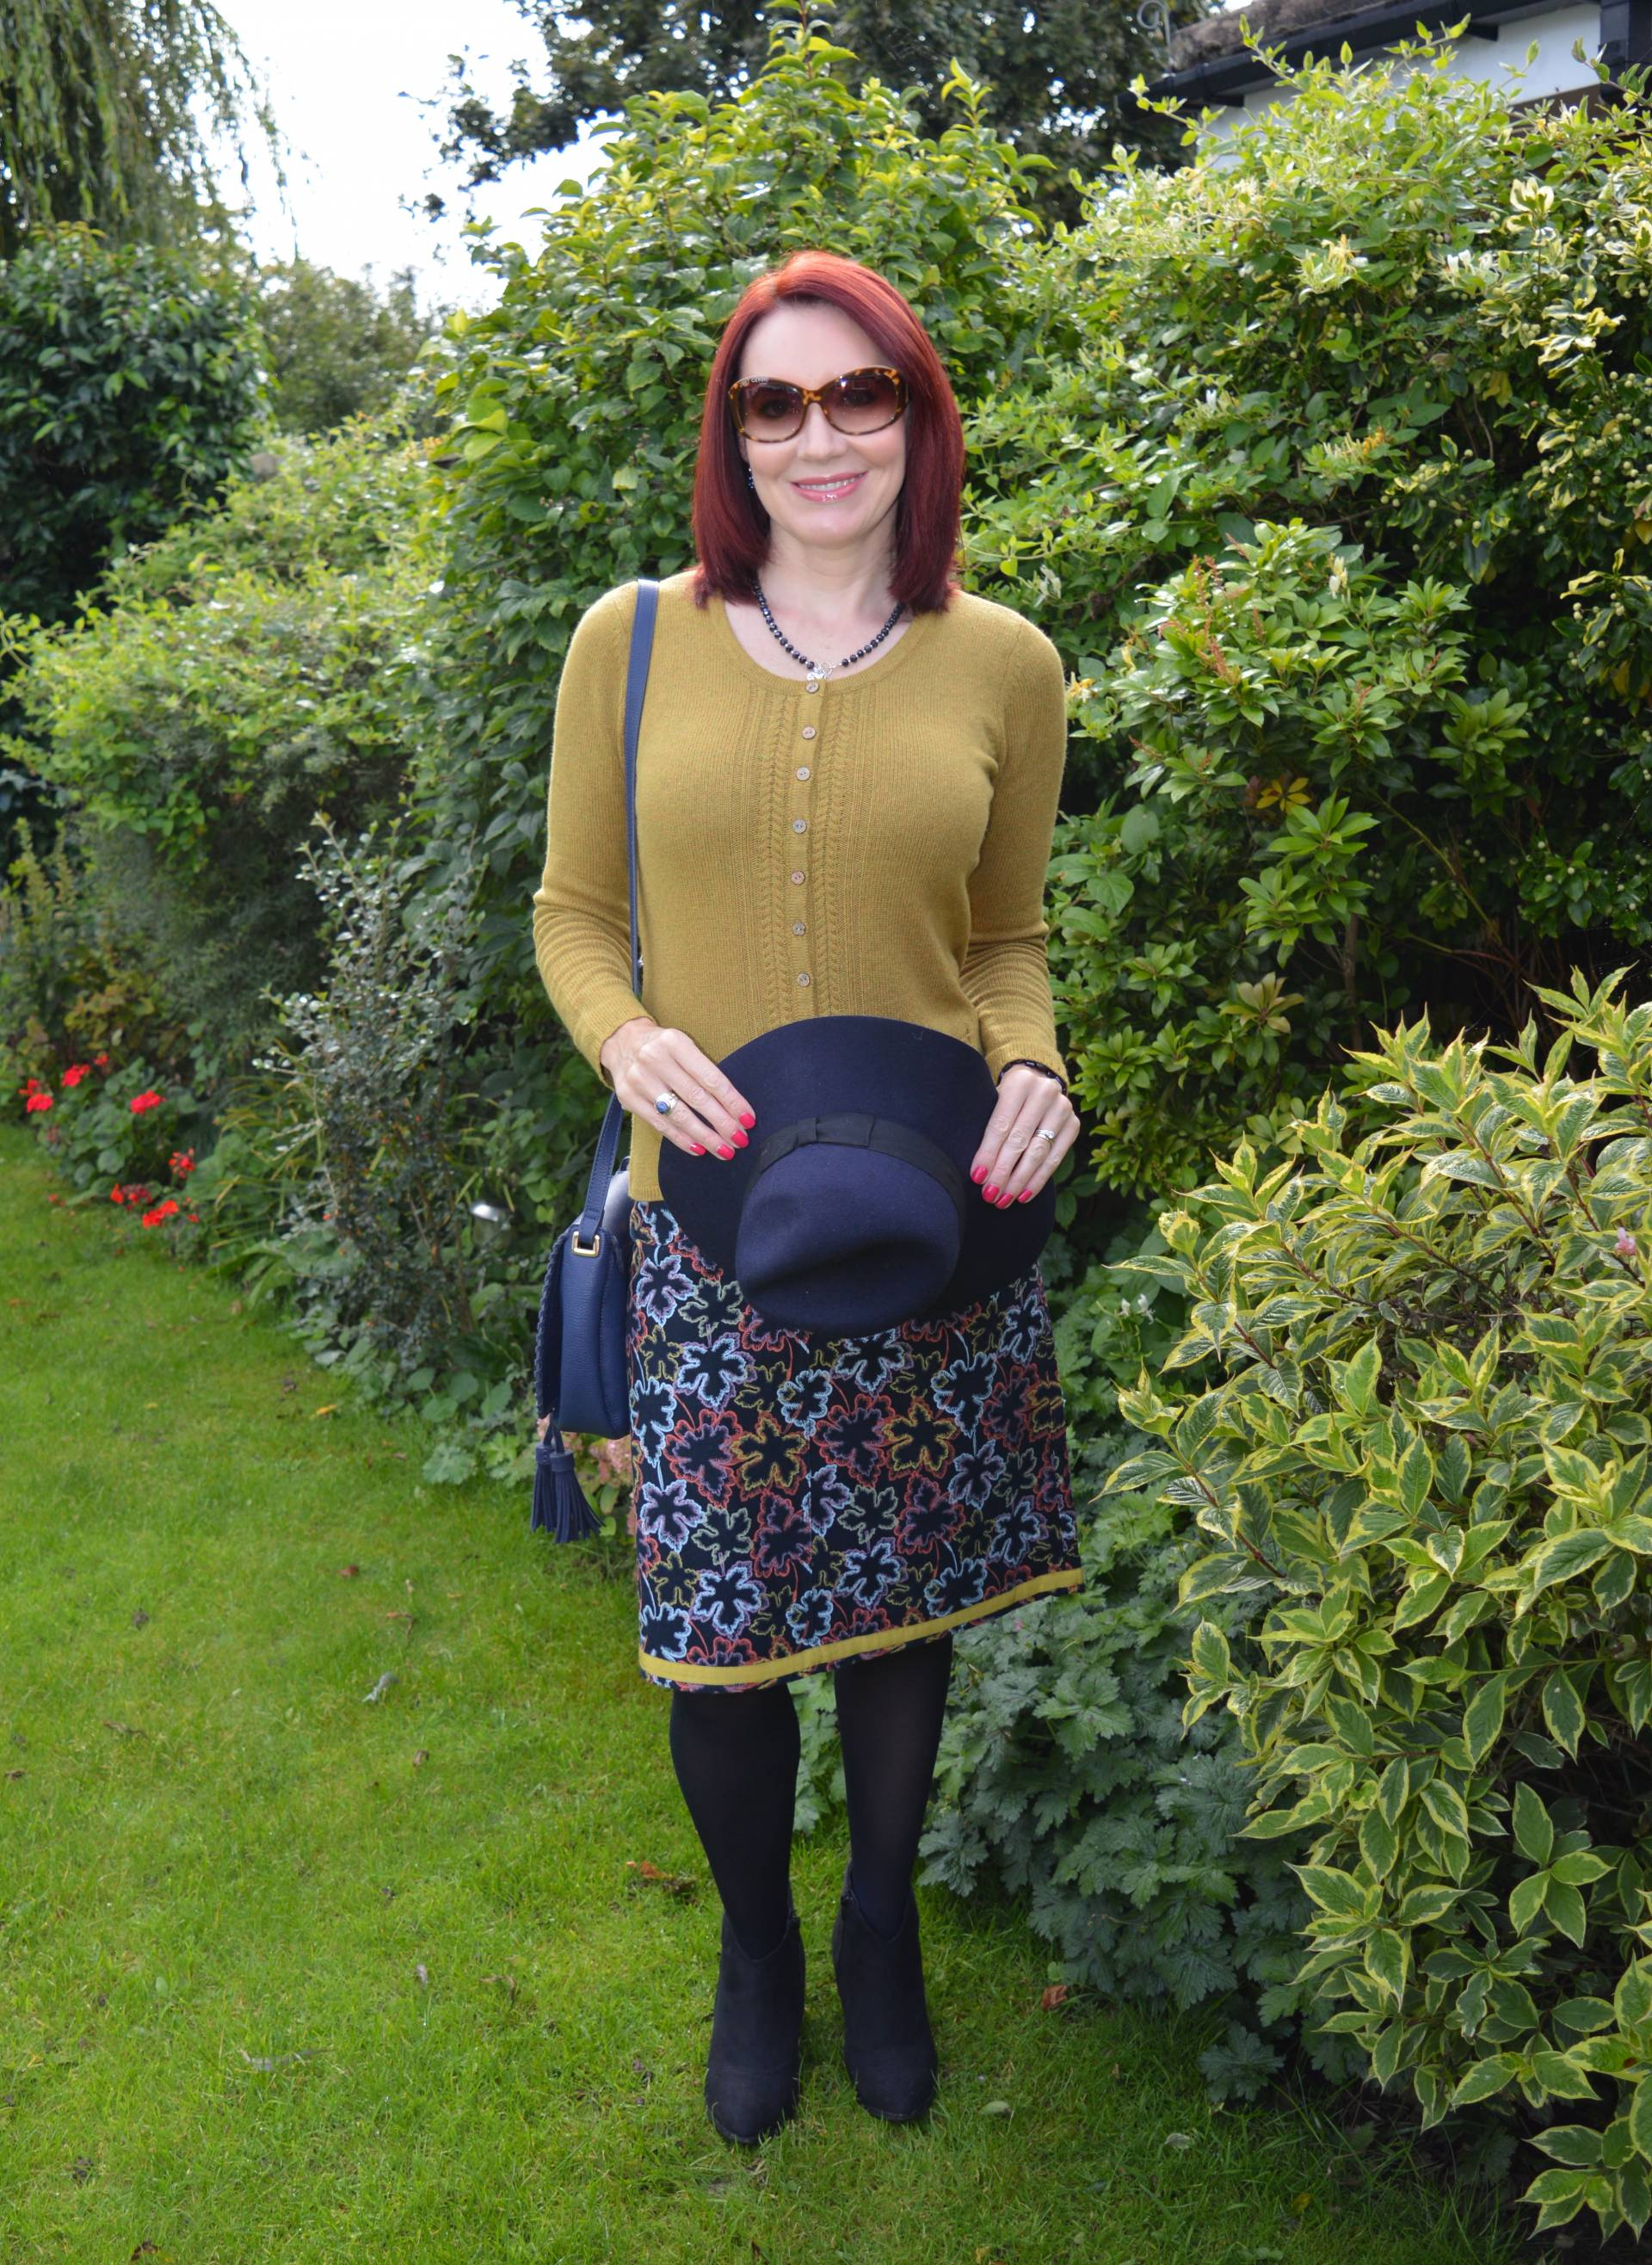 Mistral Cardigan and Leaf Print Skirt + Style With a Smile Link Up